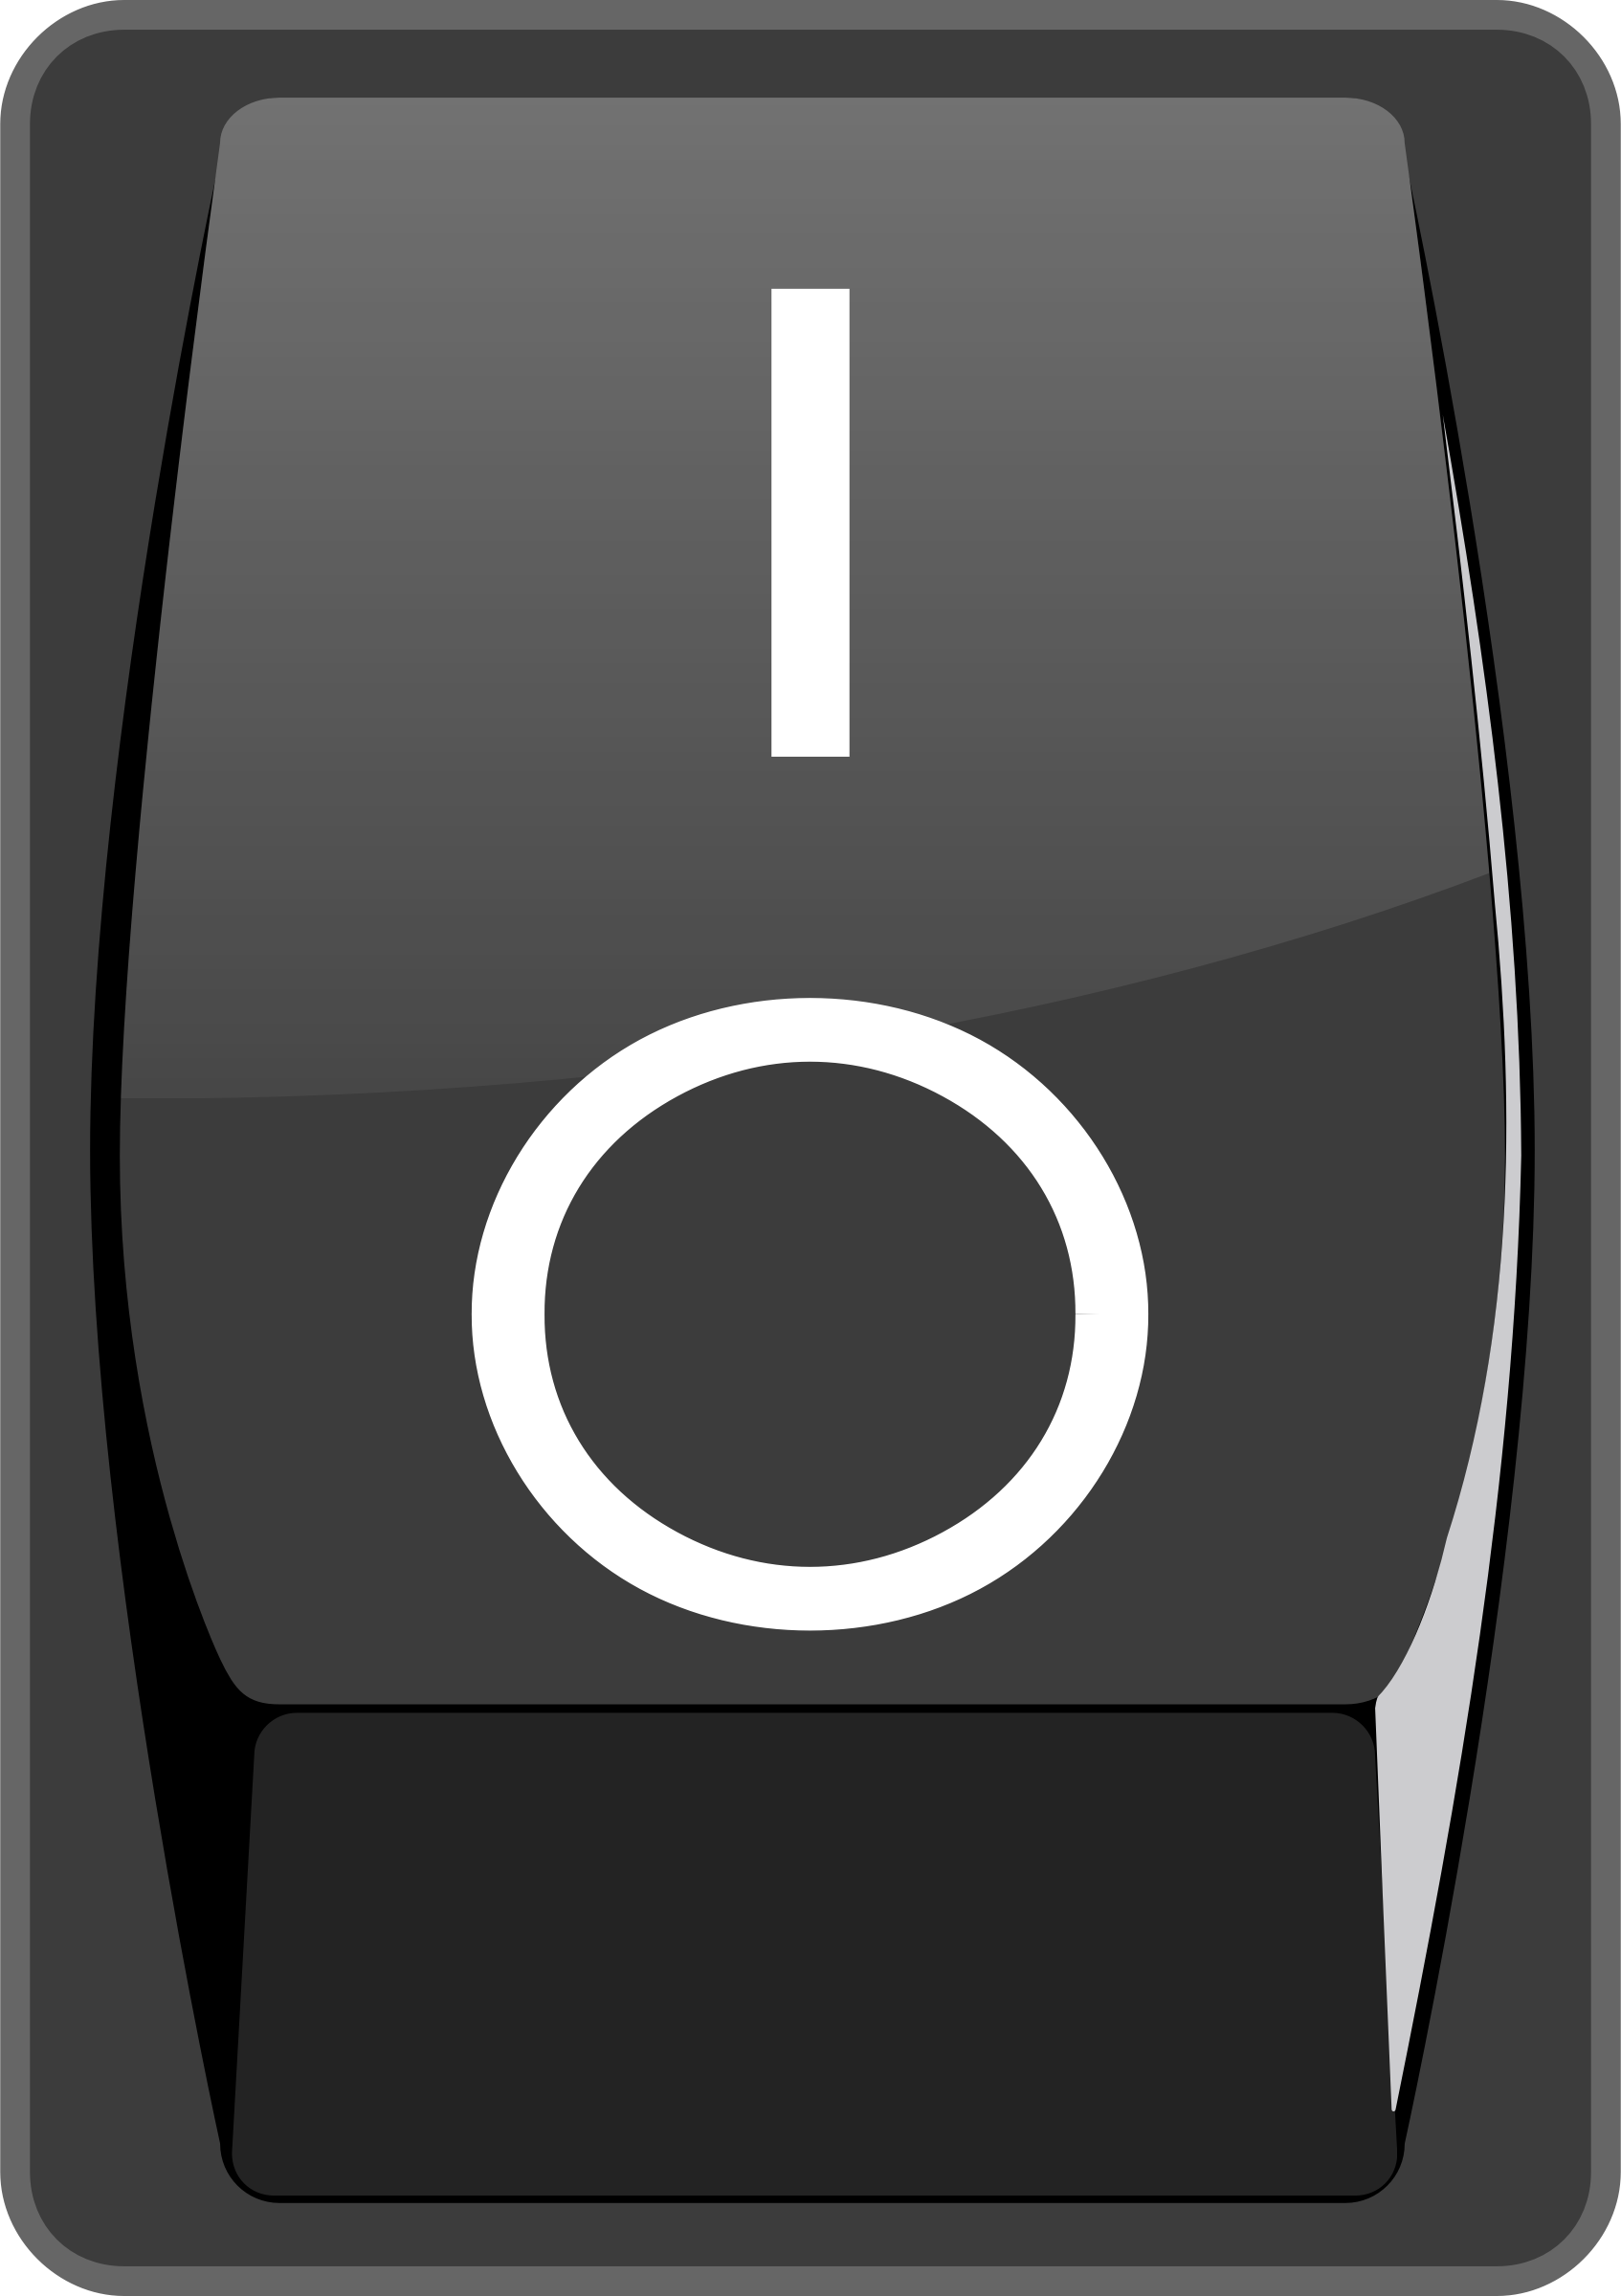 switch clipart toggle switch